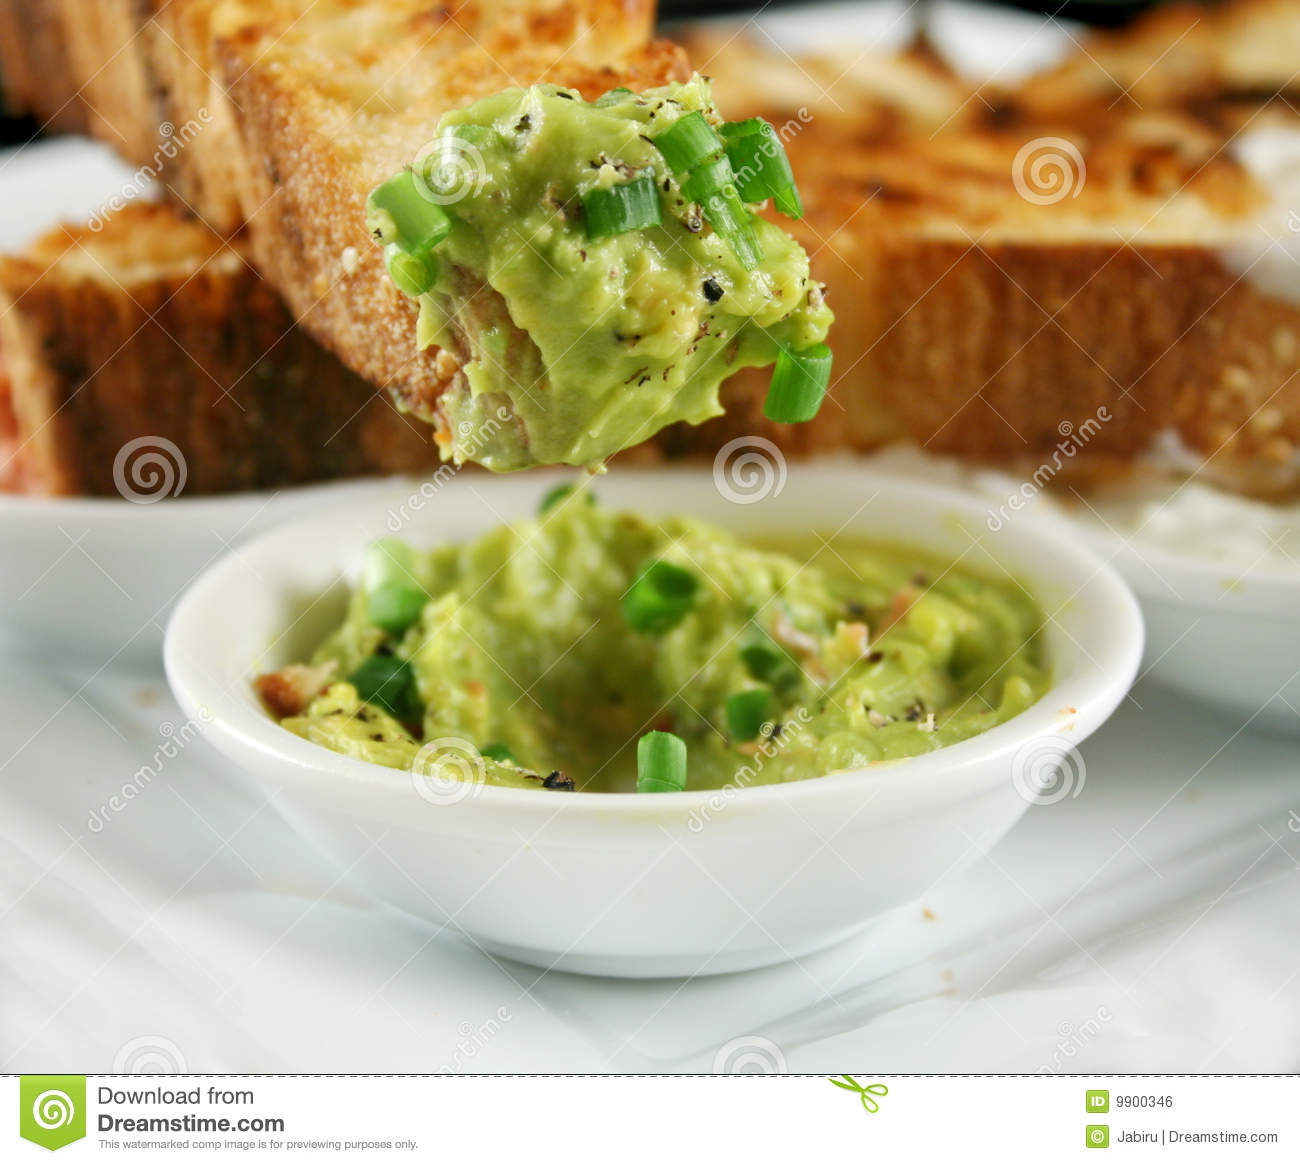 40524277d5 Delicious and colorful avocado dip with grilled Turkish bread.